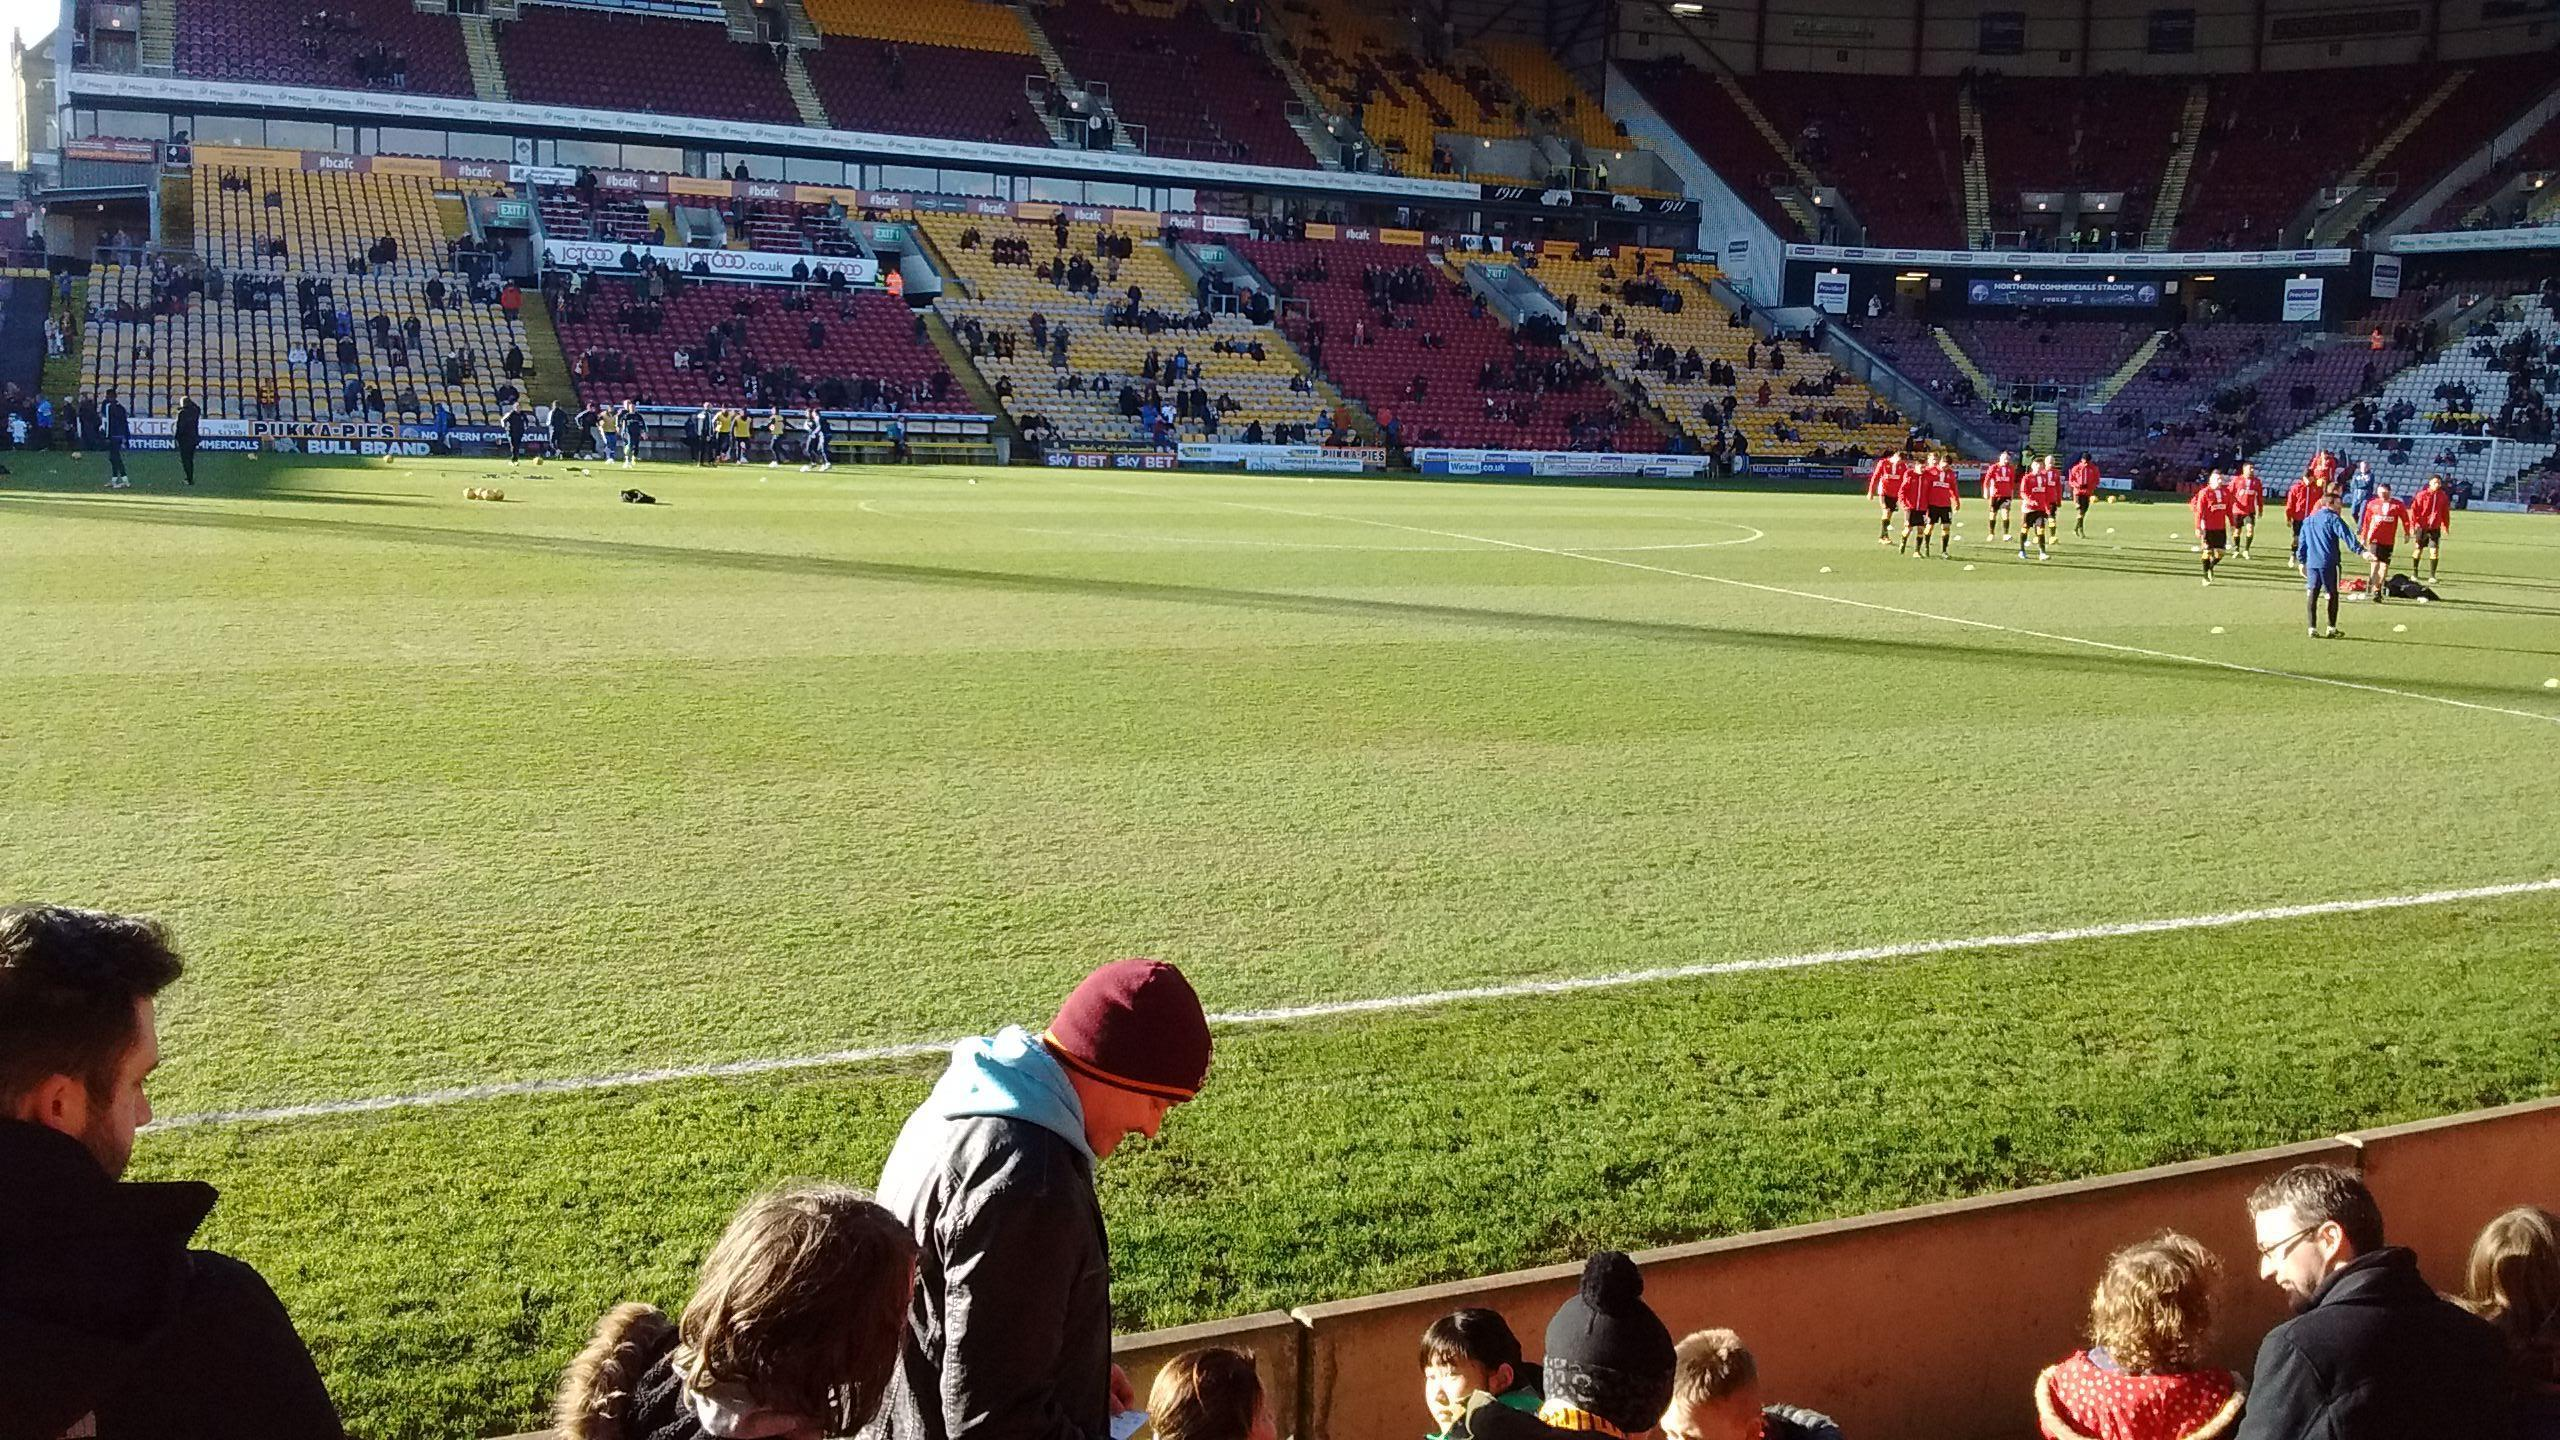 Valley Parade Section Midland road Row E Seat 139